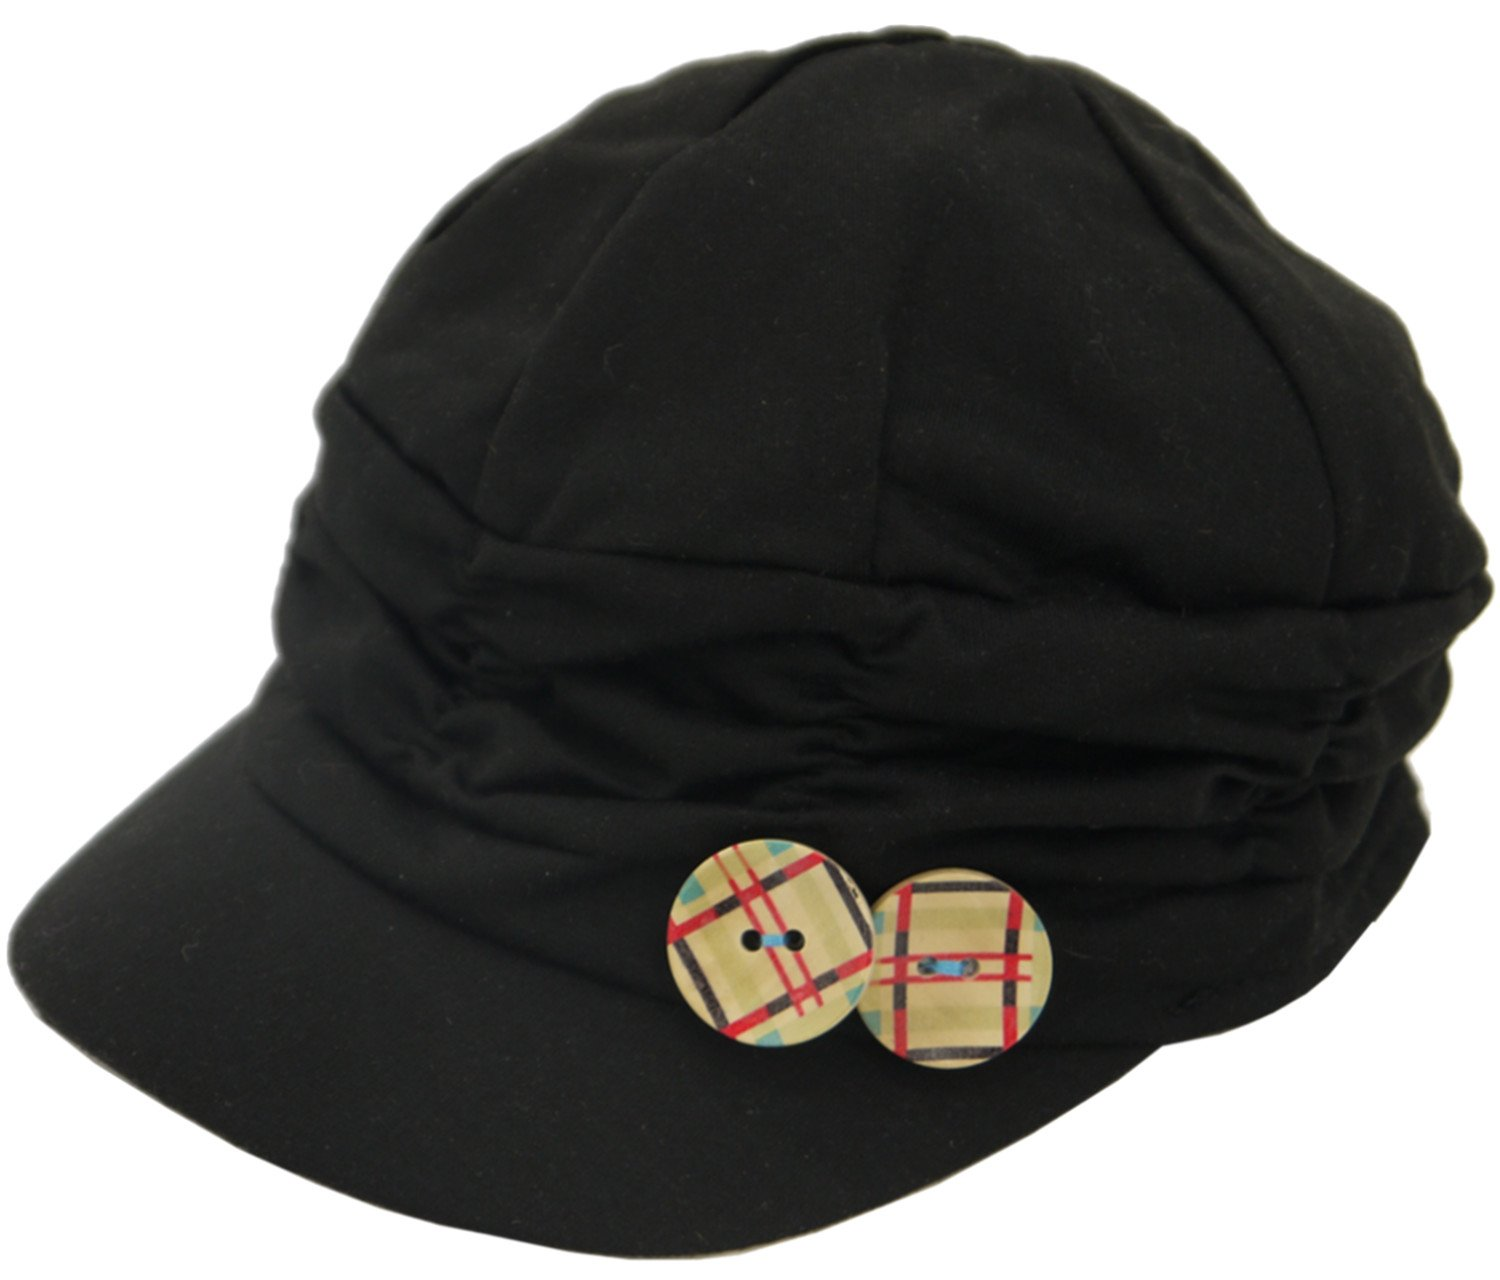 "Toki-Meki Princess Girl Fashion Army Cap Elastic Back (21-22"") w/Wood Button Charm Black & Deco"